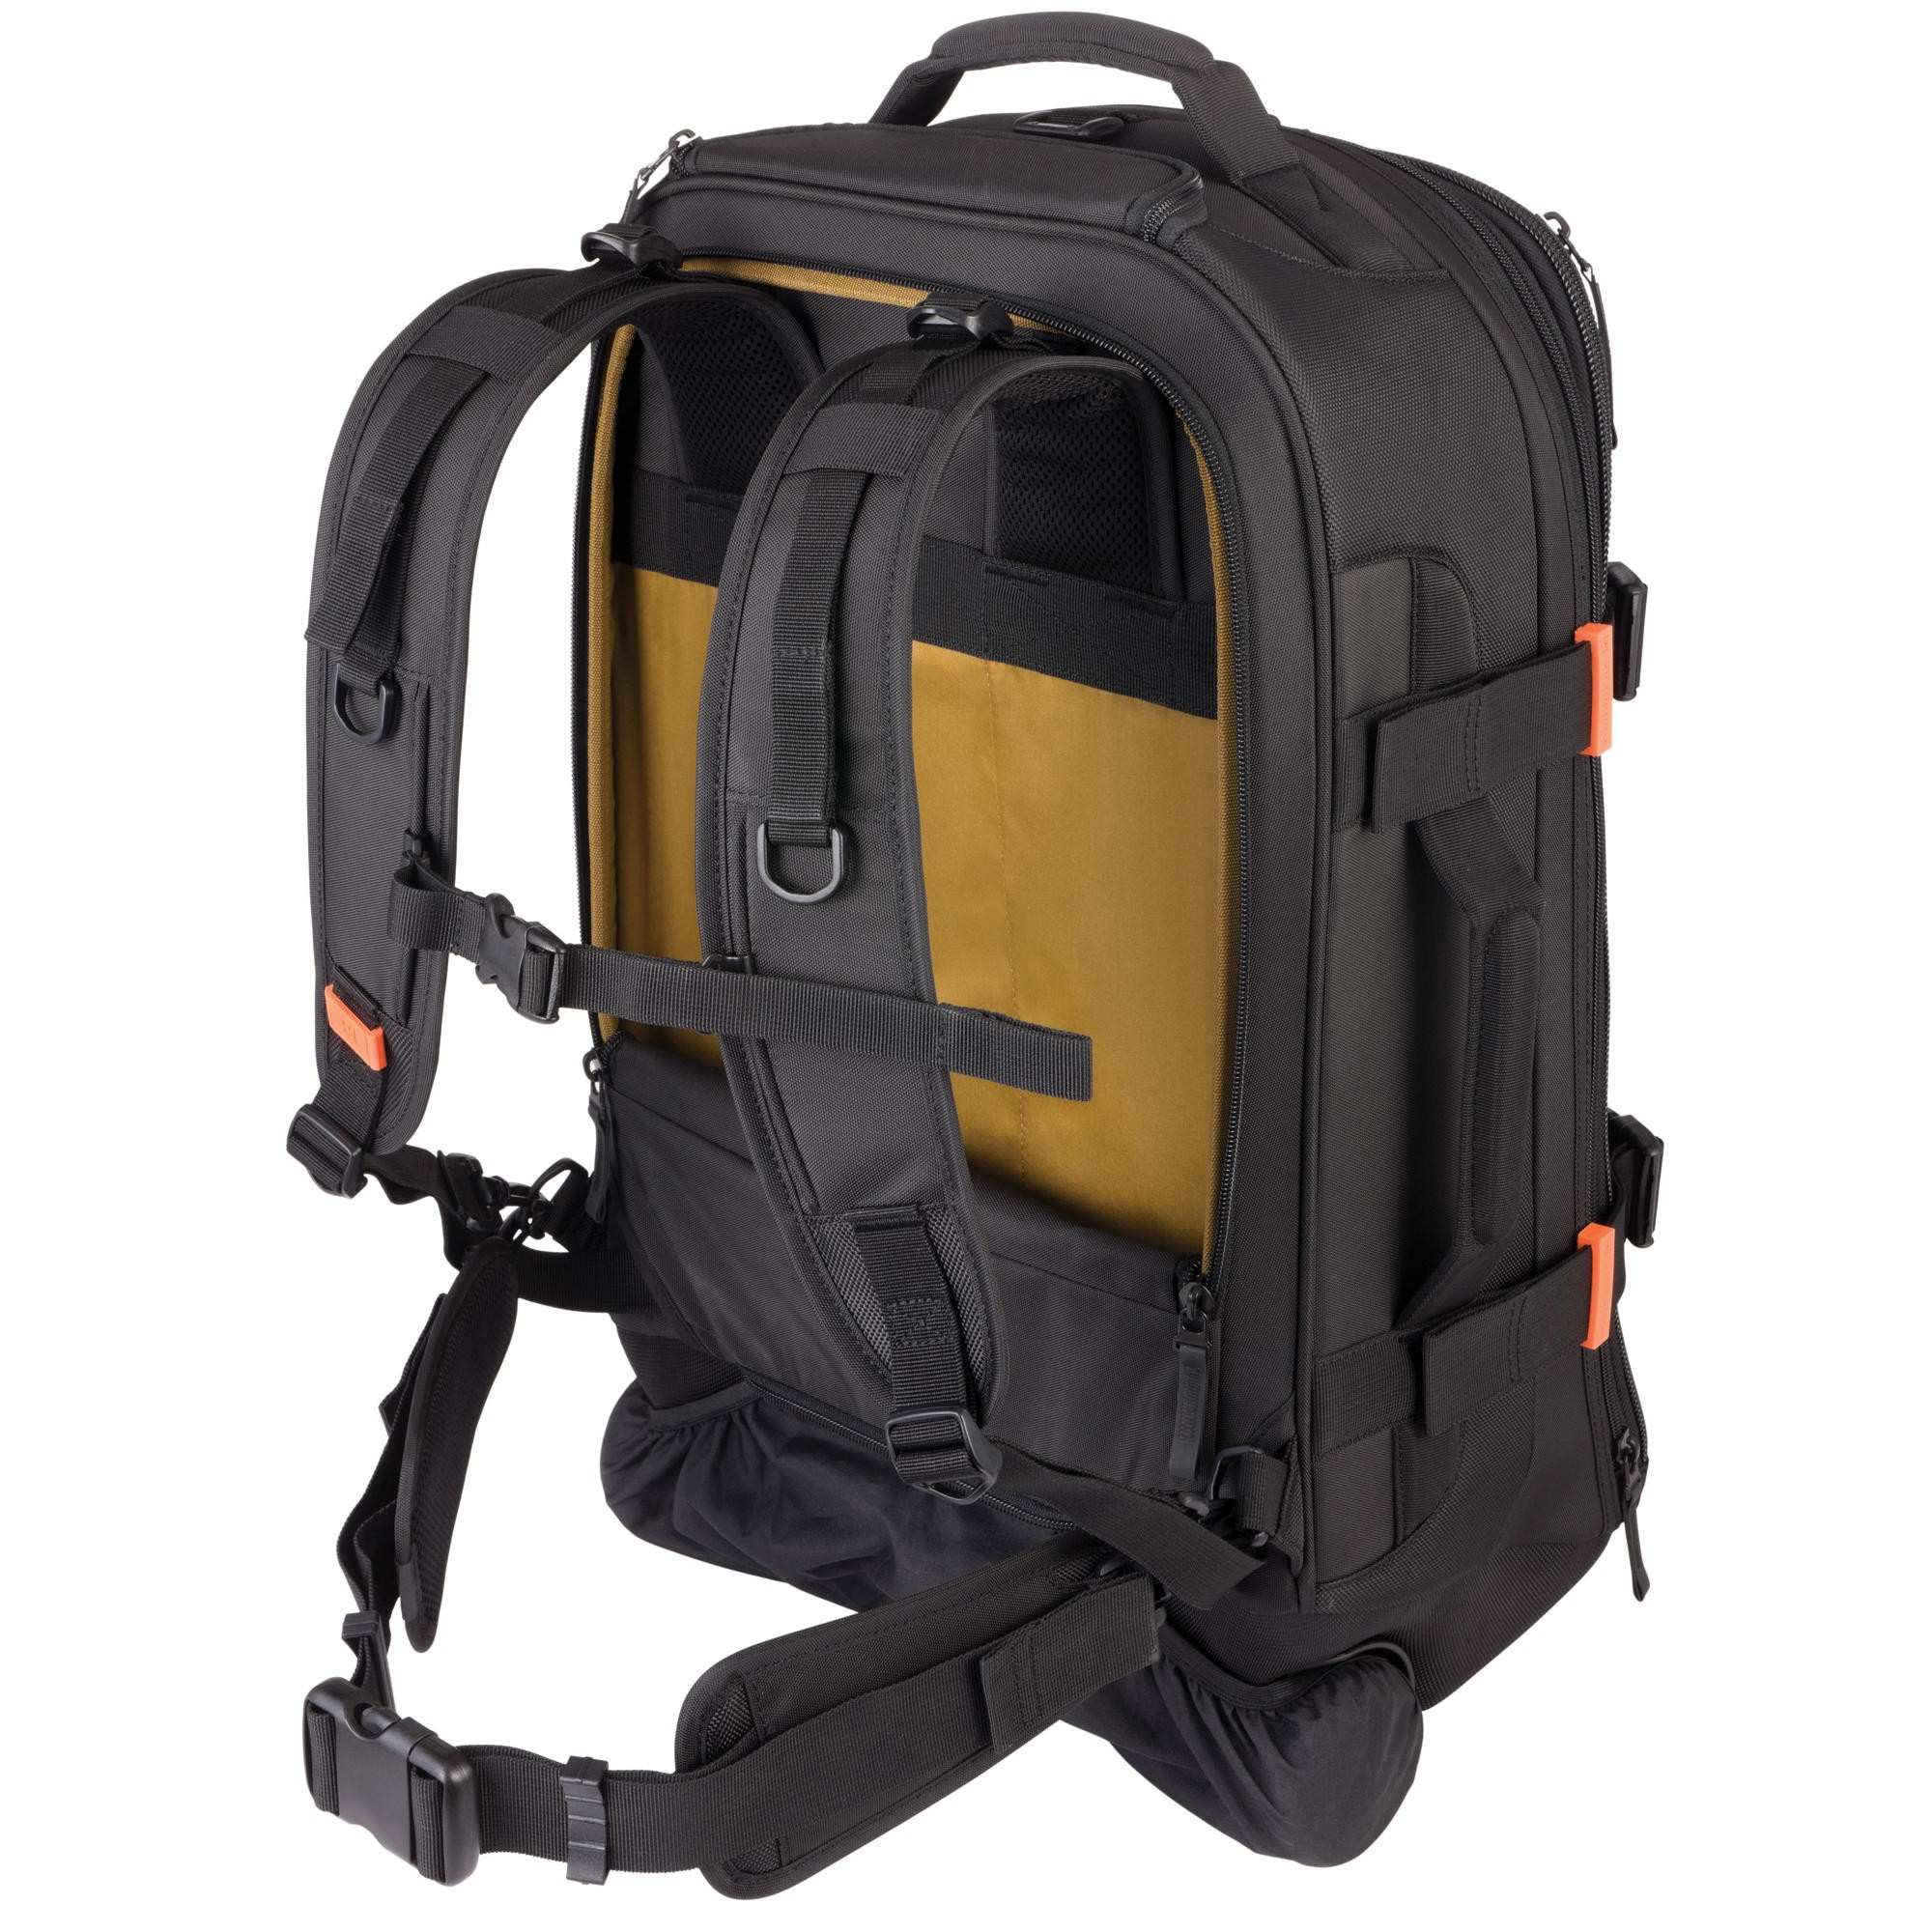 Rolling Backpack Carry On VuEiDC1j